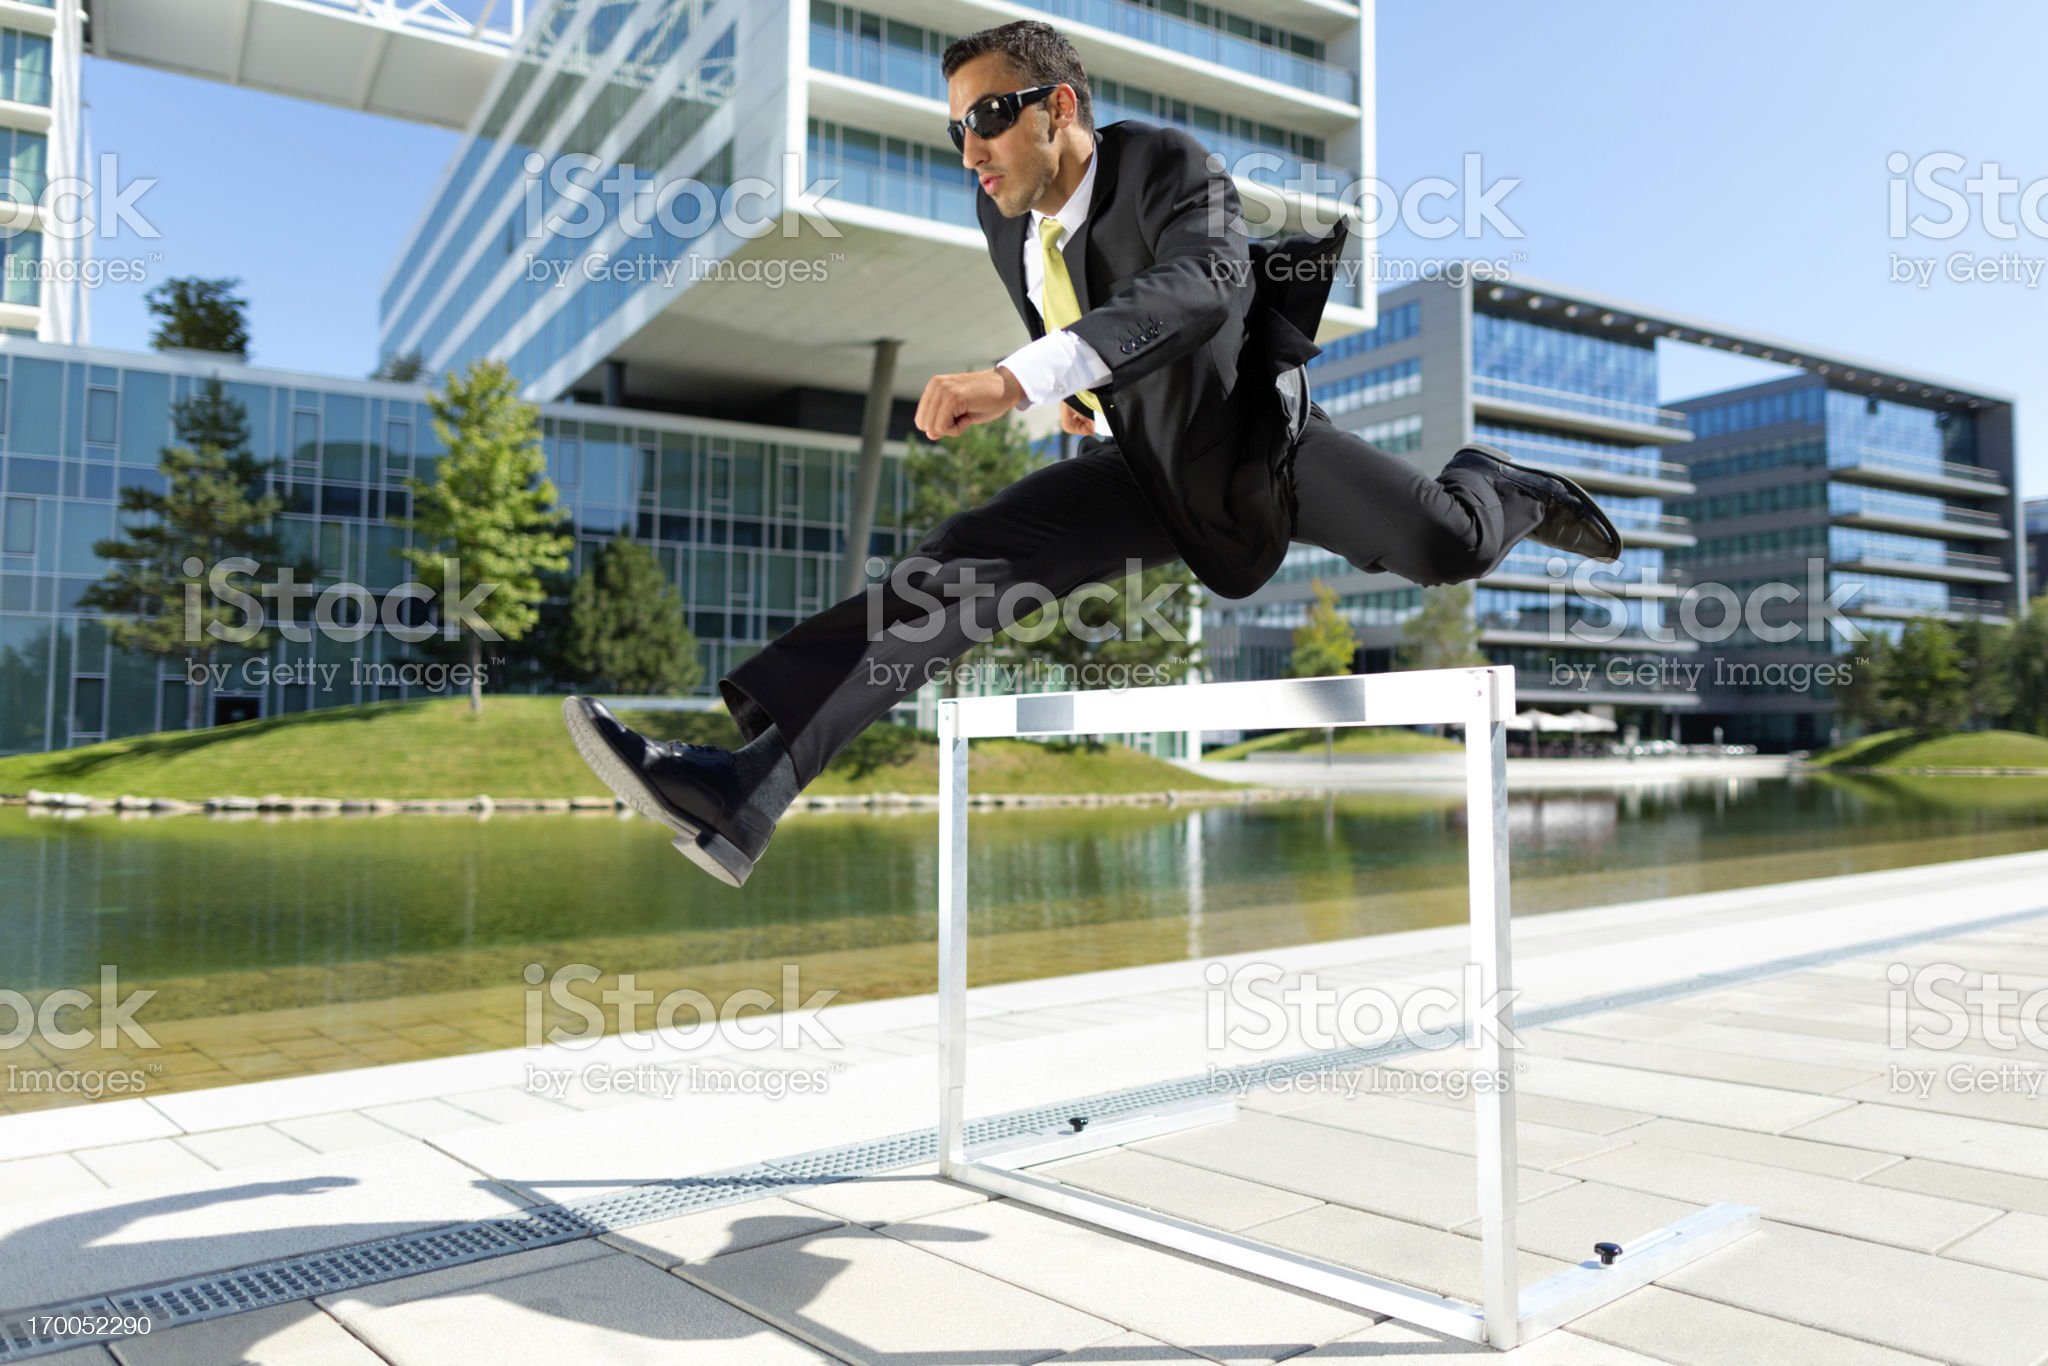 business man over hurdle near offices royalty-free stock photo